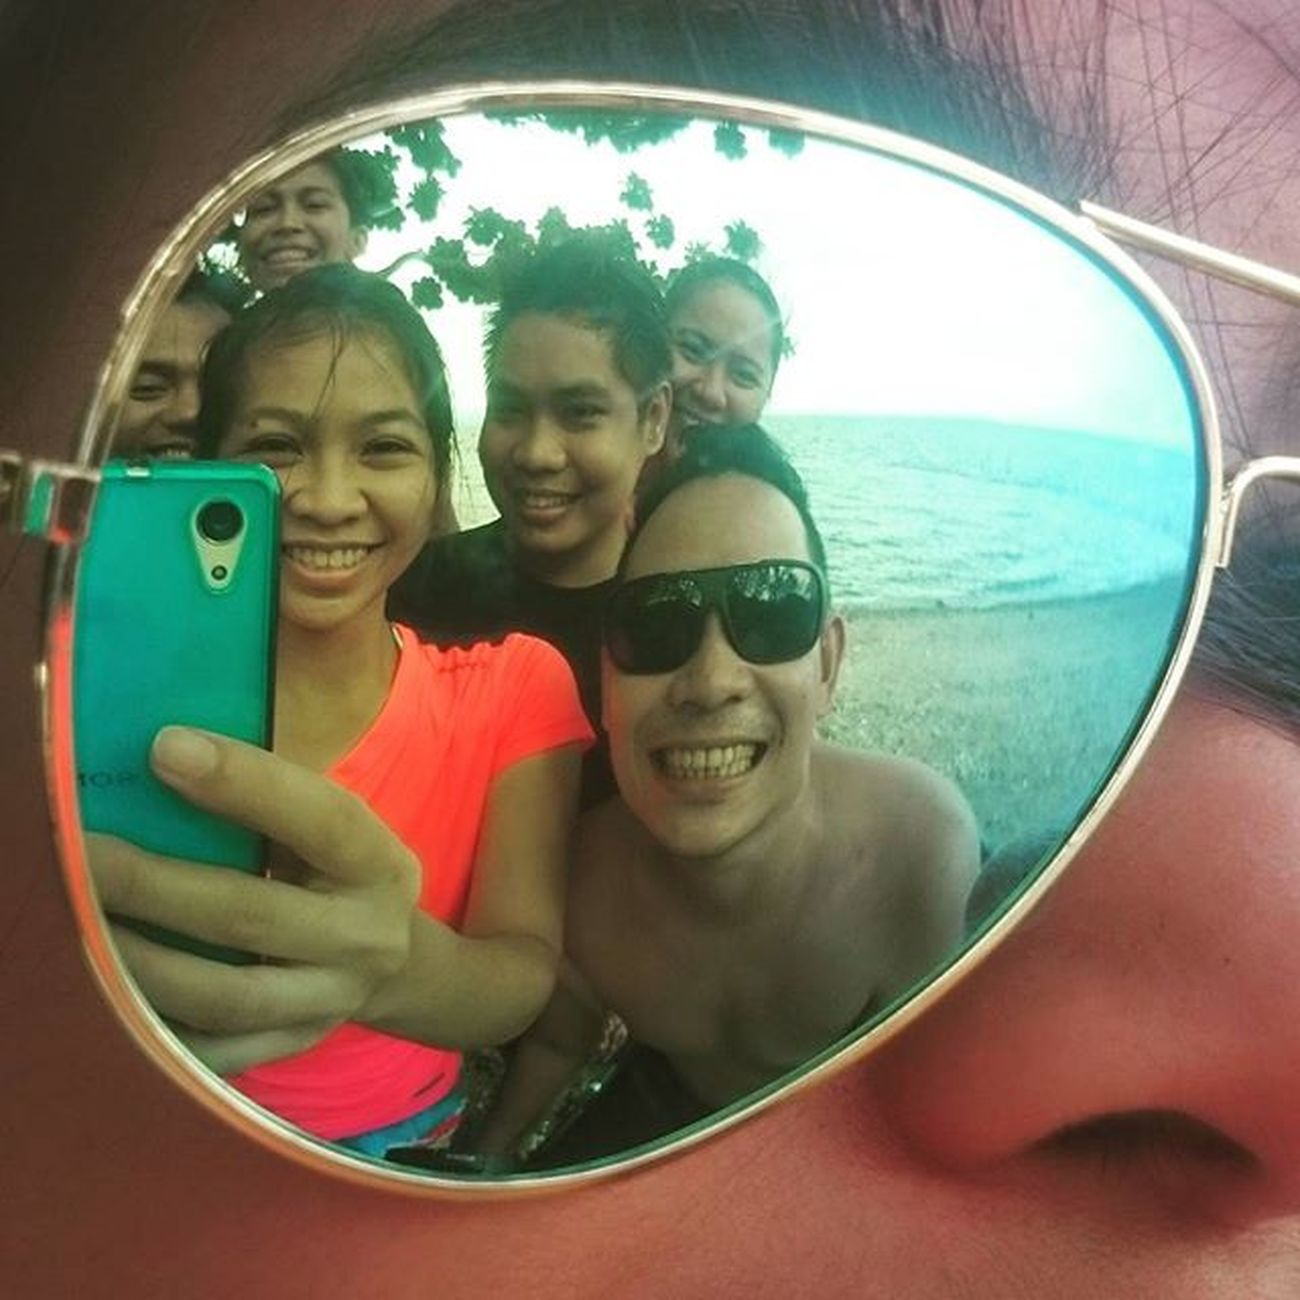 THE PESKIES BAYWATCH: Ooohhh look who's here on my flash lens? Cool kids. 😎😄😁👍👌 Peskiesonthego PlainHappiness November182015 Escapade Latepost KristinaEPICOLAF KristinaEpicCatIdeas Sonyverse XPERIA ICAN BeMoved